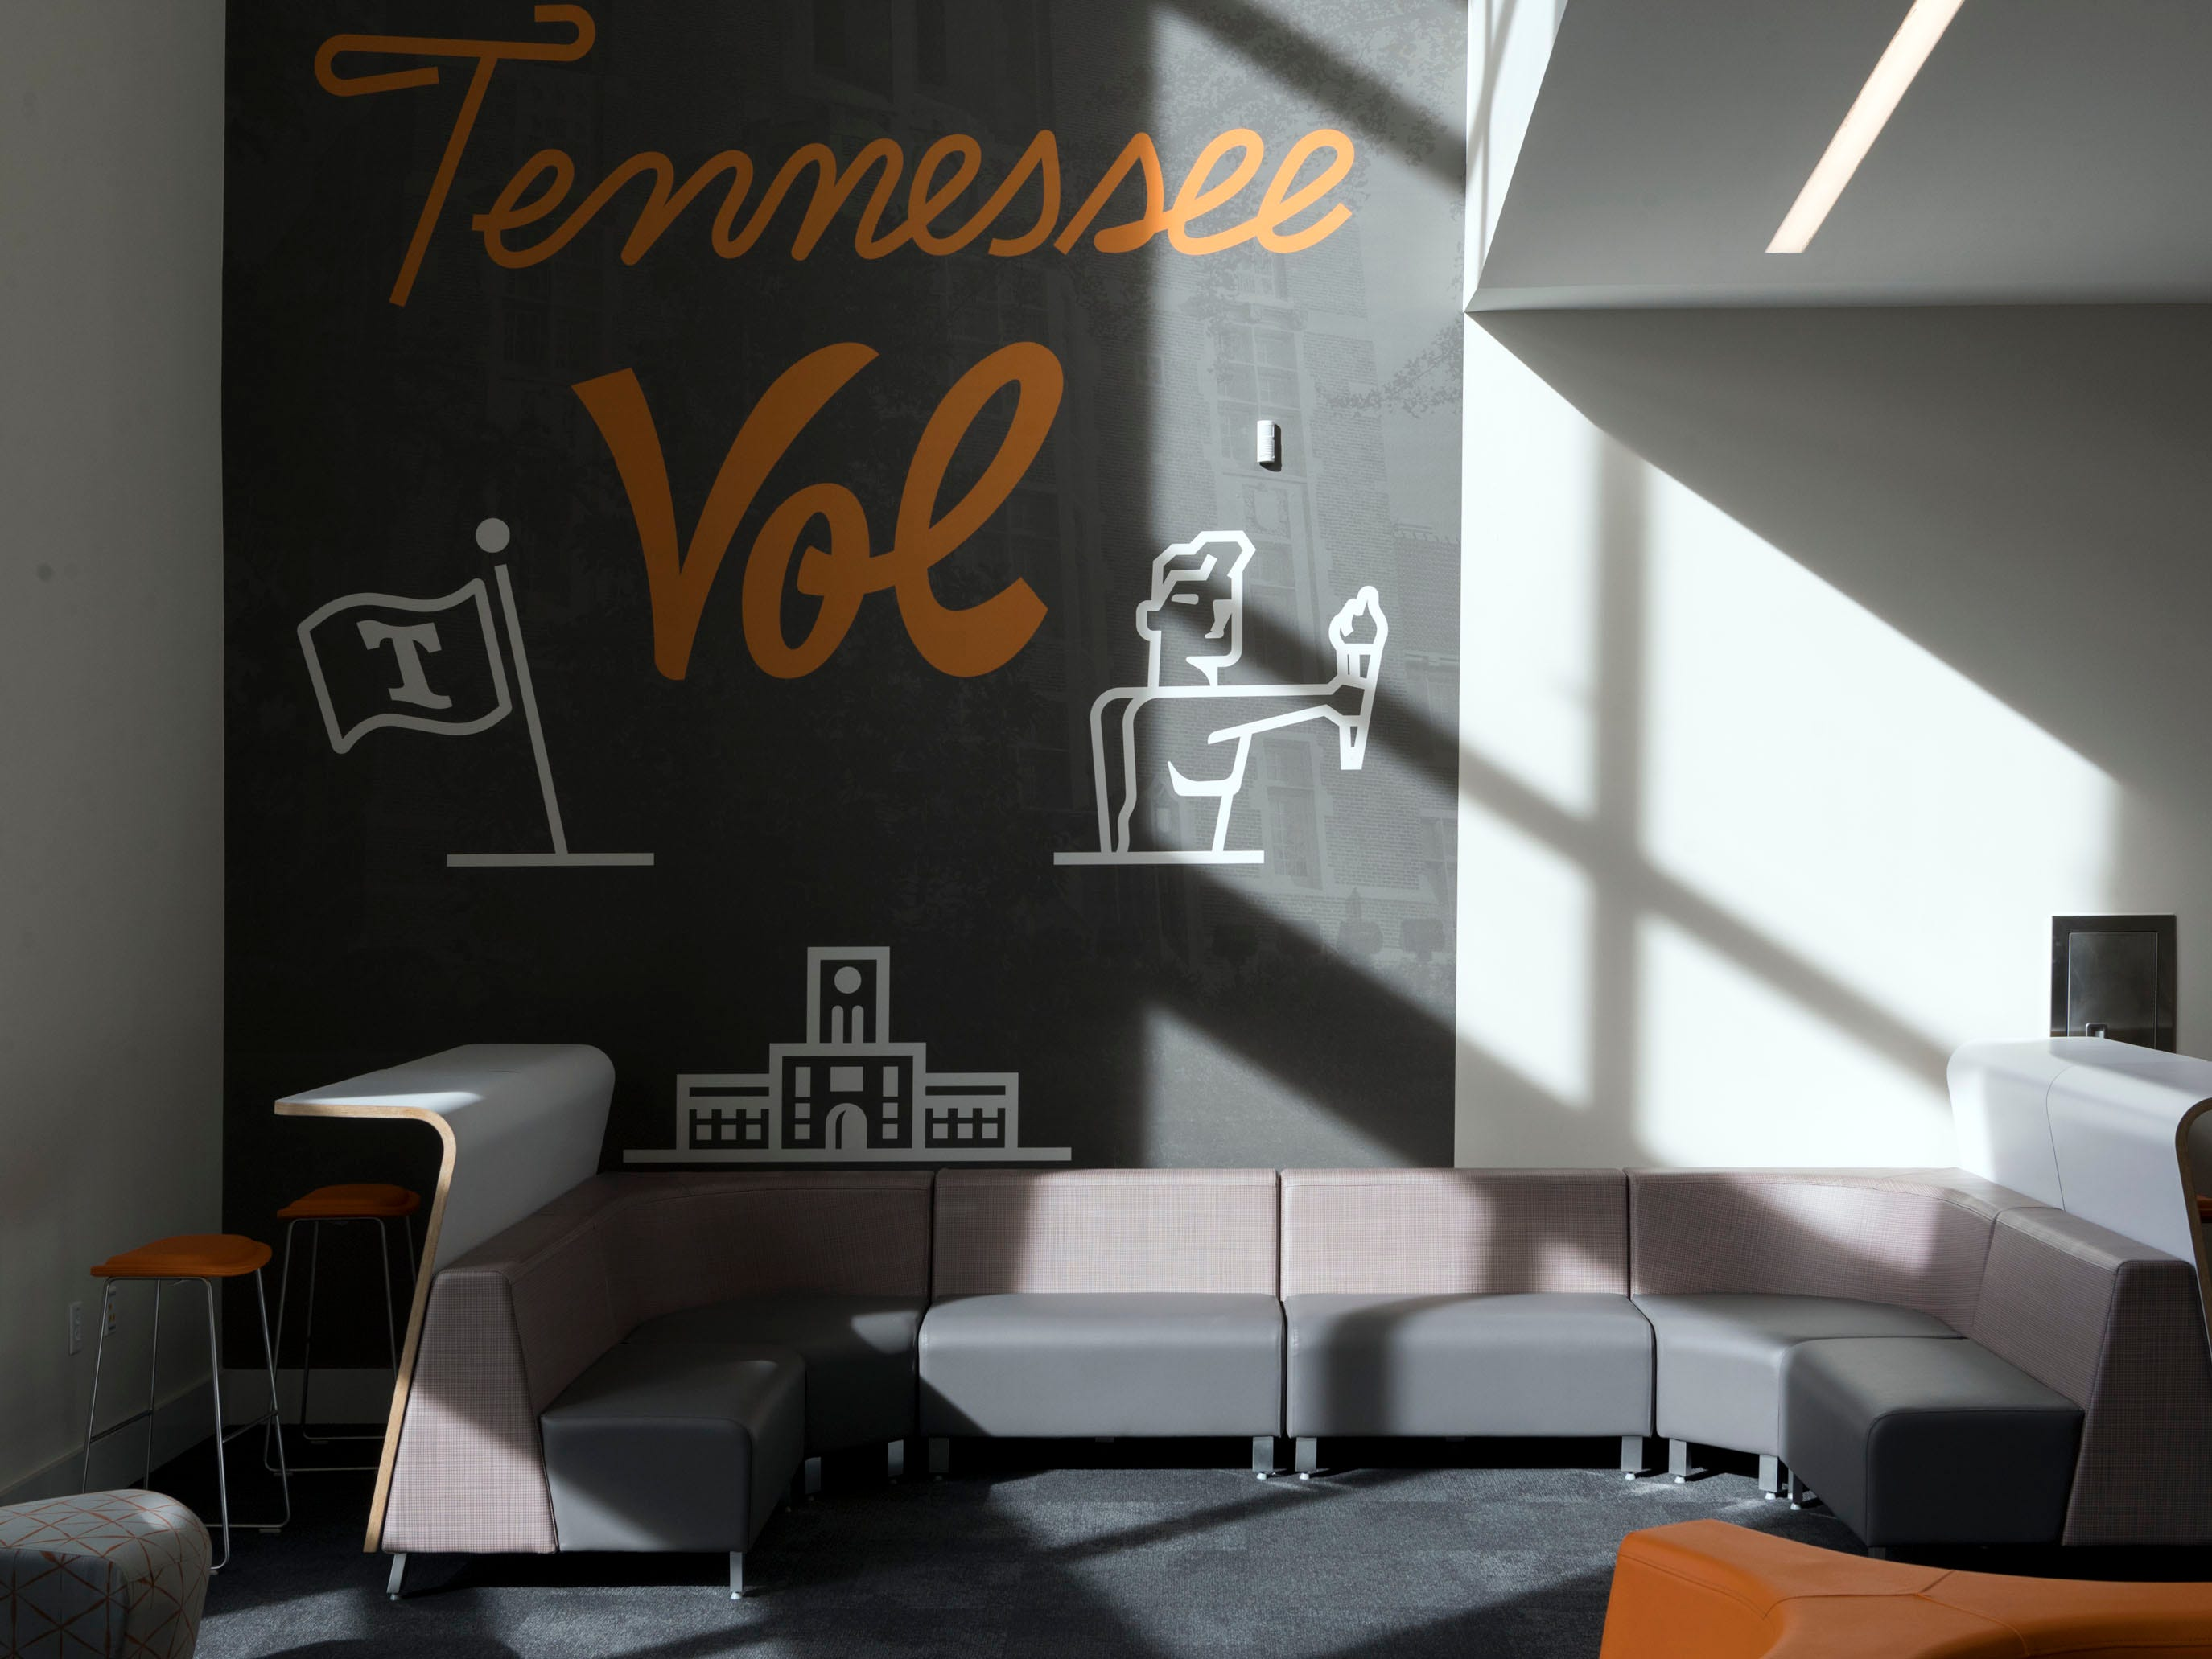 Sitting area inside University of Tennessee's Student Union on Monday, January 7, 2019.